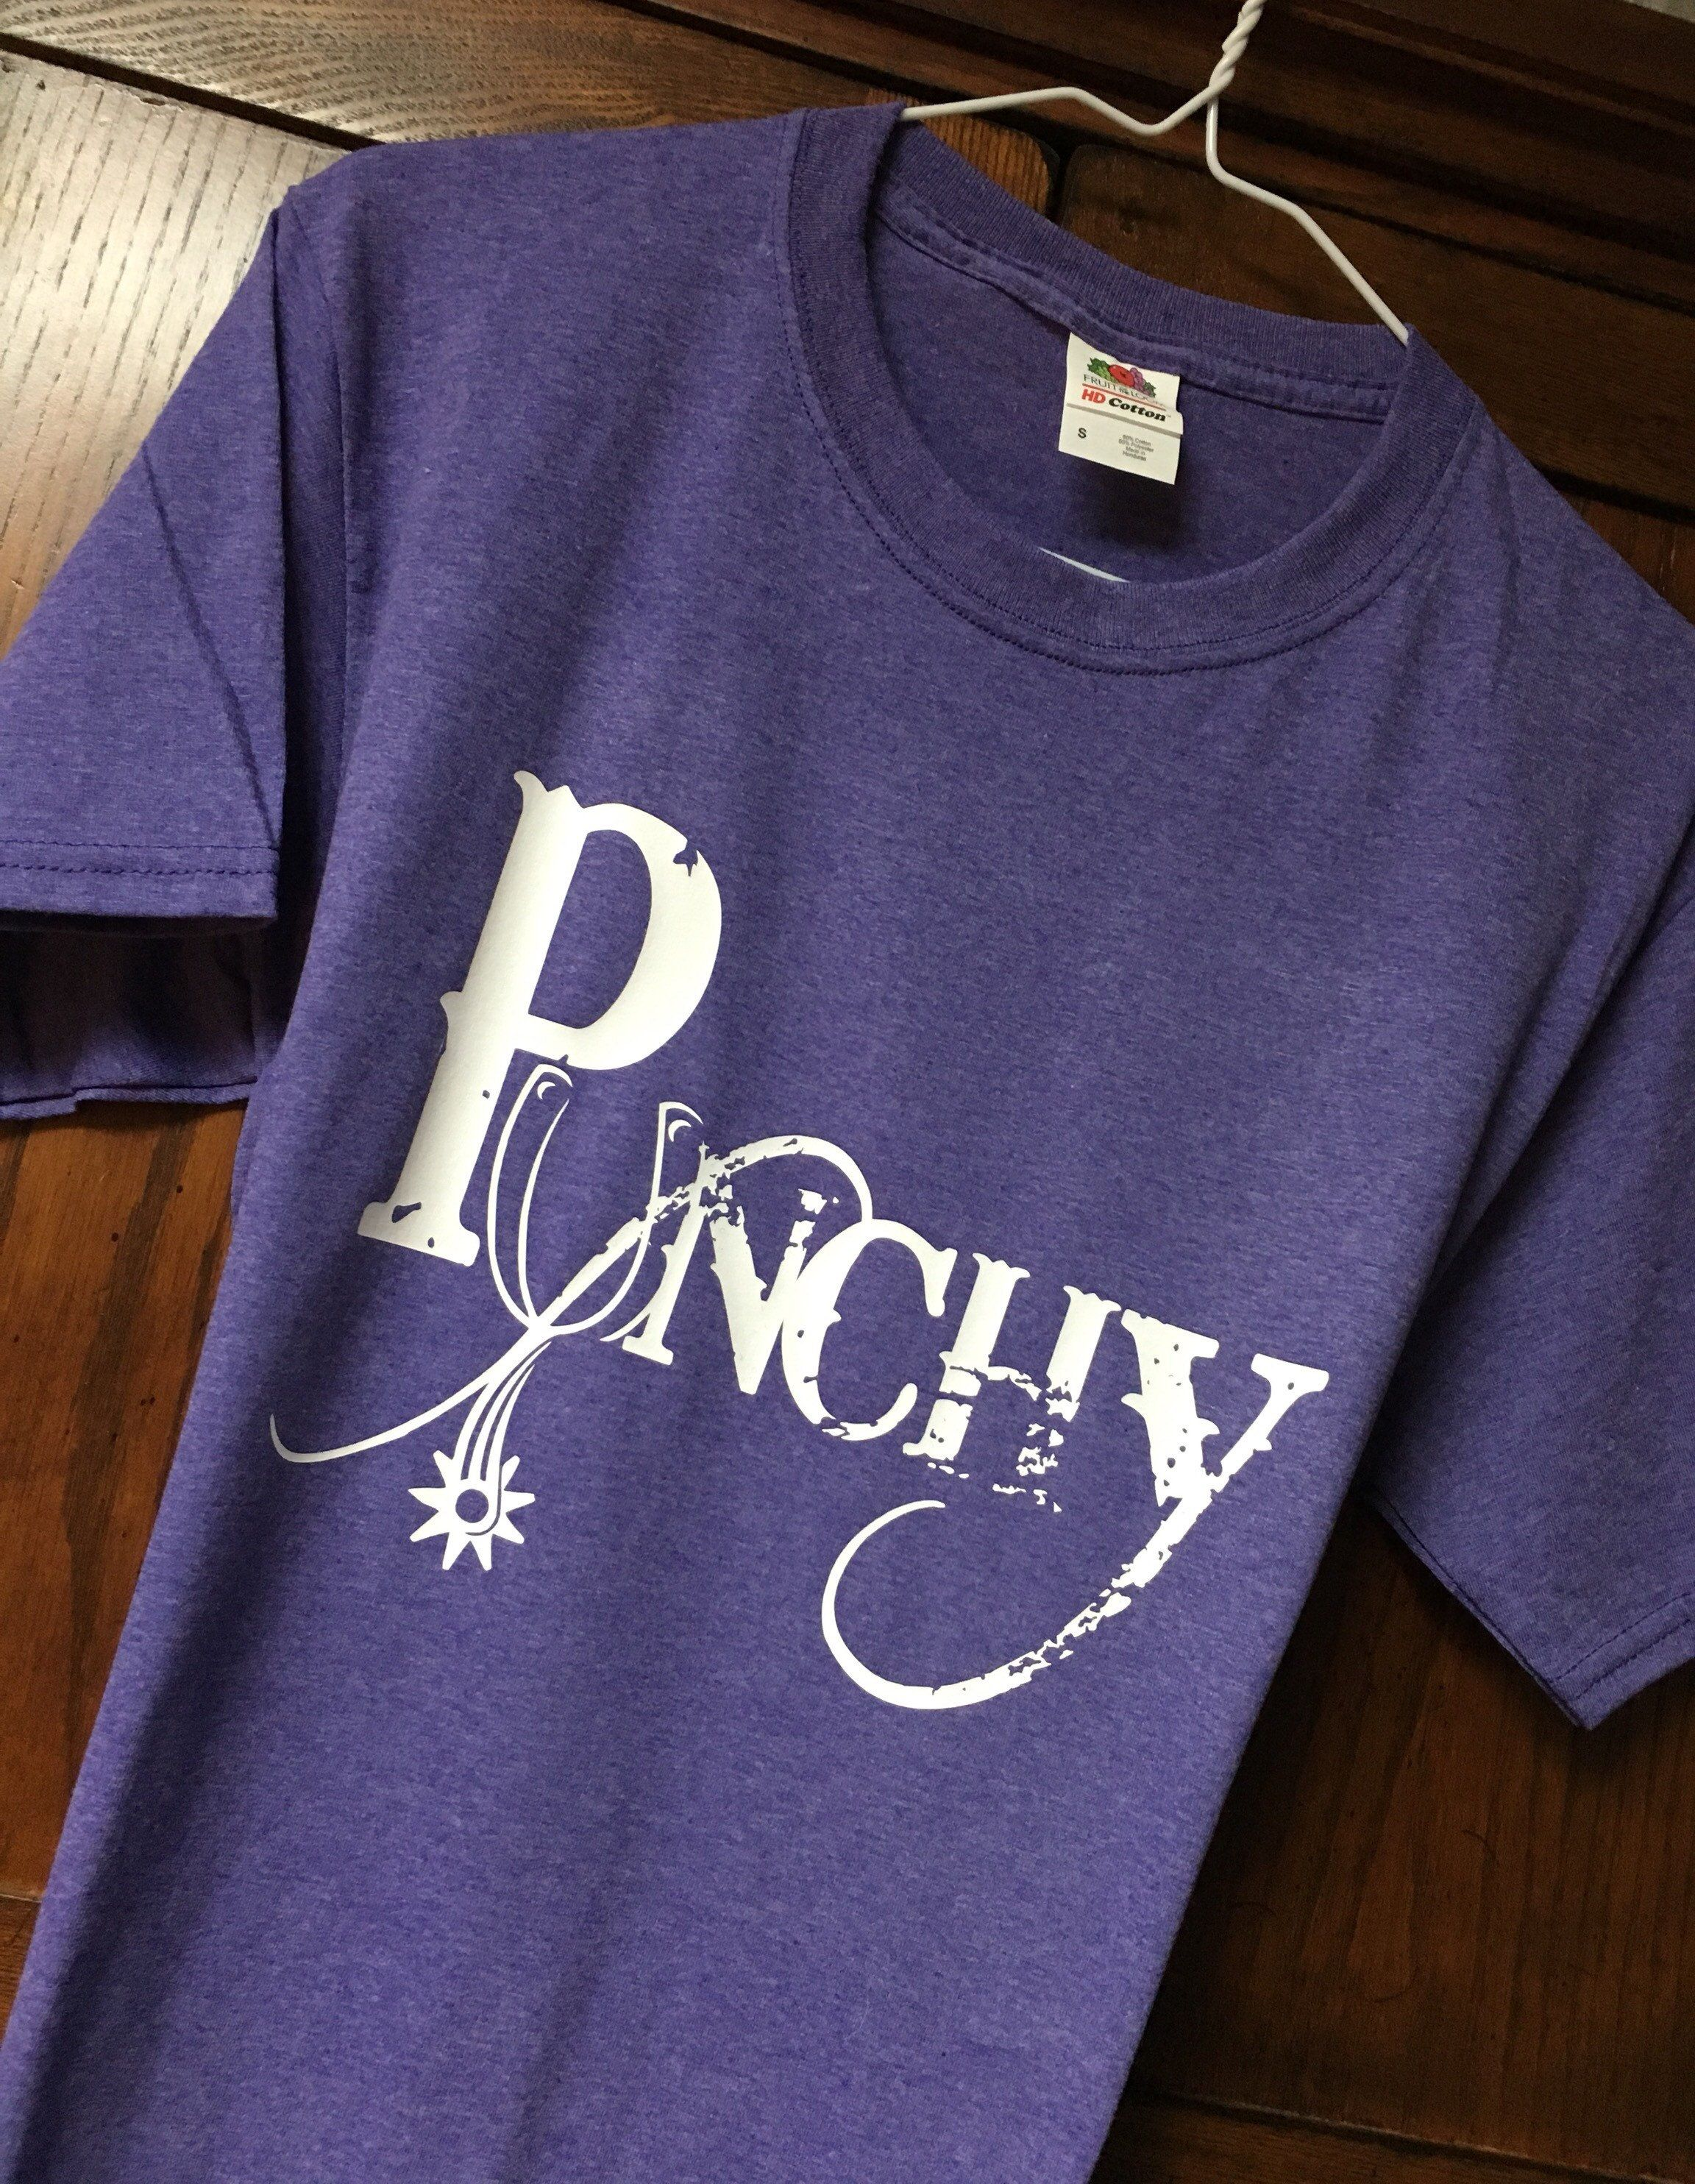 bd10ec077 Shirt Ideas · Excited to share the latest addition to my #etsy shop: Punchy- cowgirl attire